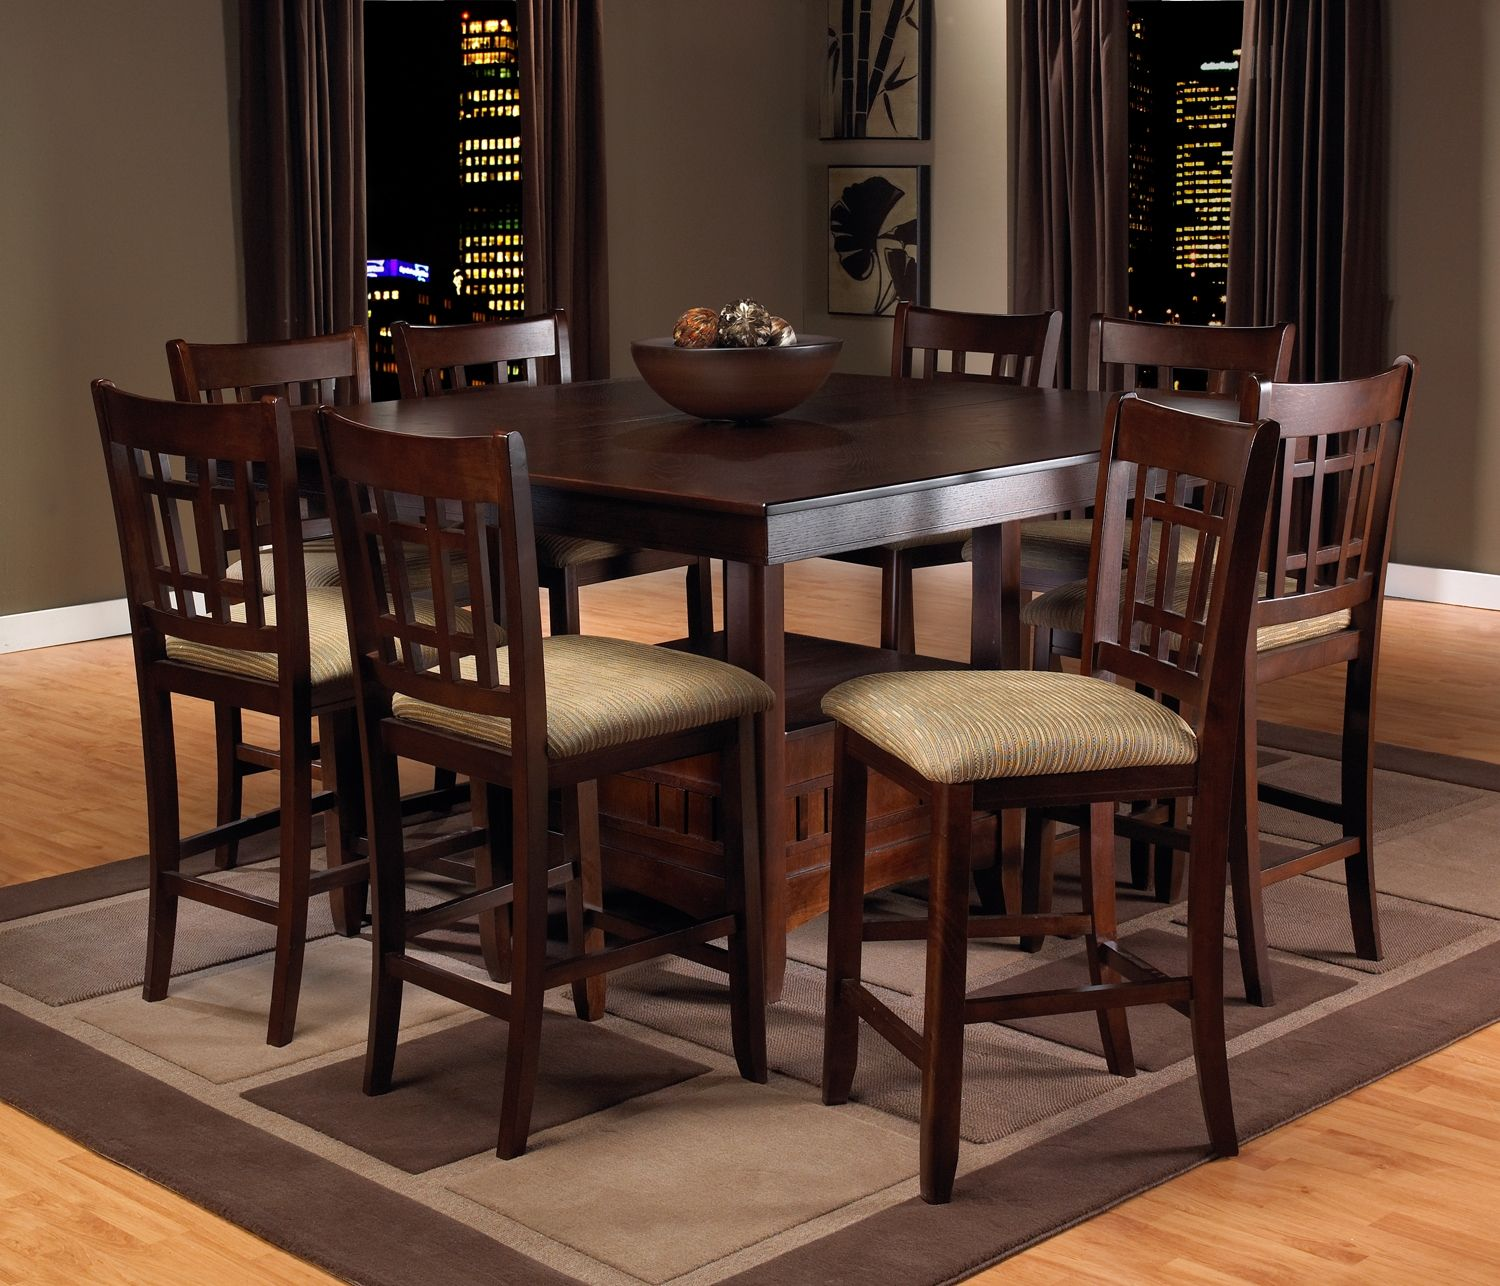 Bar height square kitchen table  Casual Dining Room FurnitureThe Brighton CollectionBrighton Pub